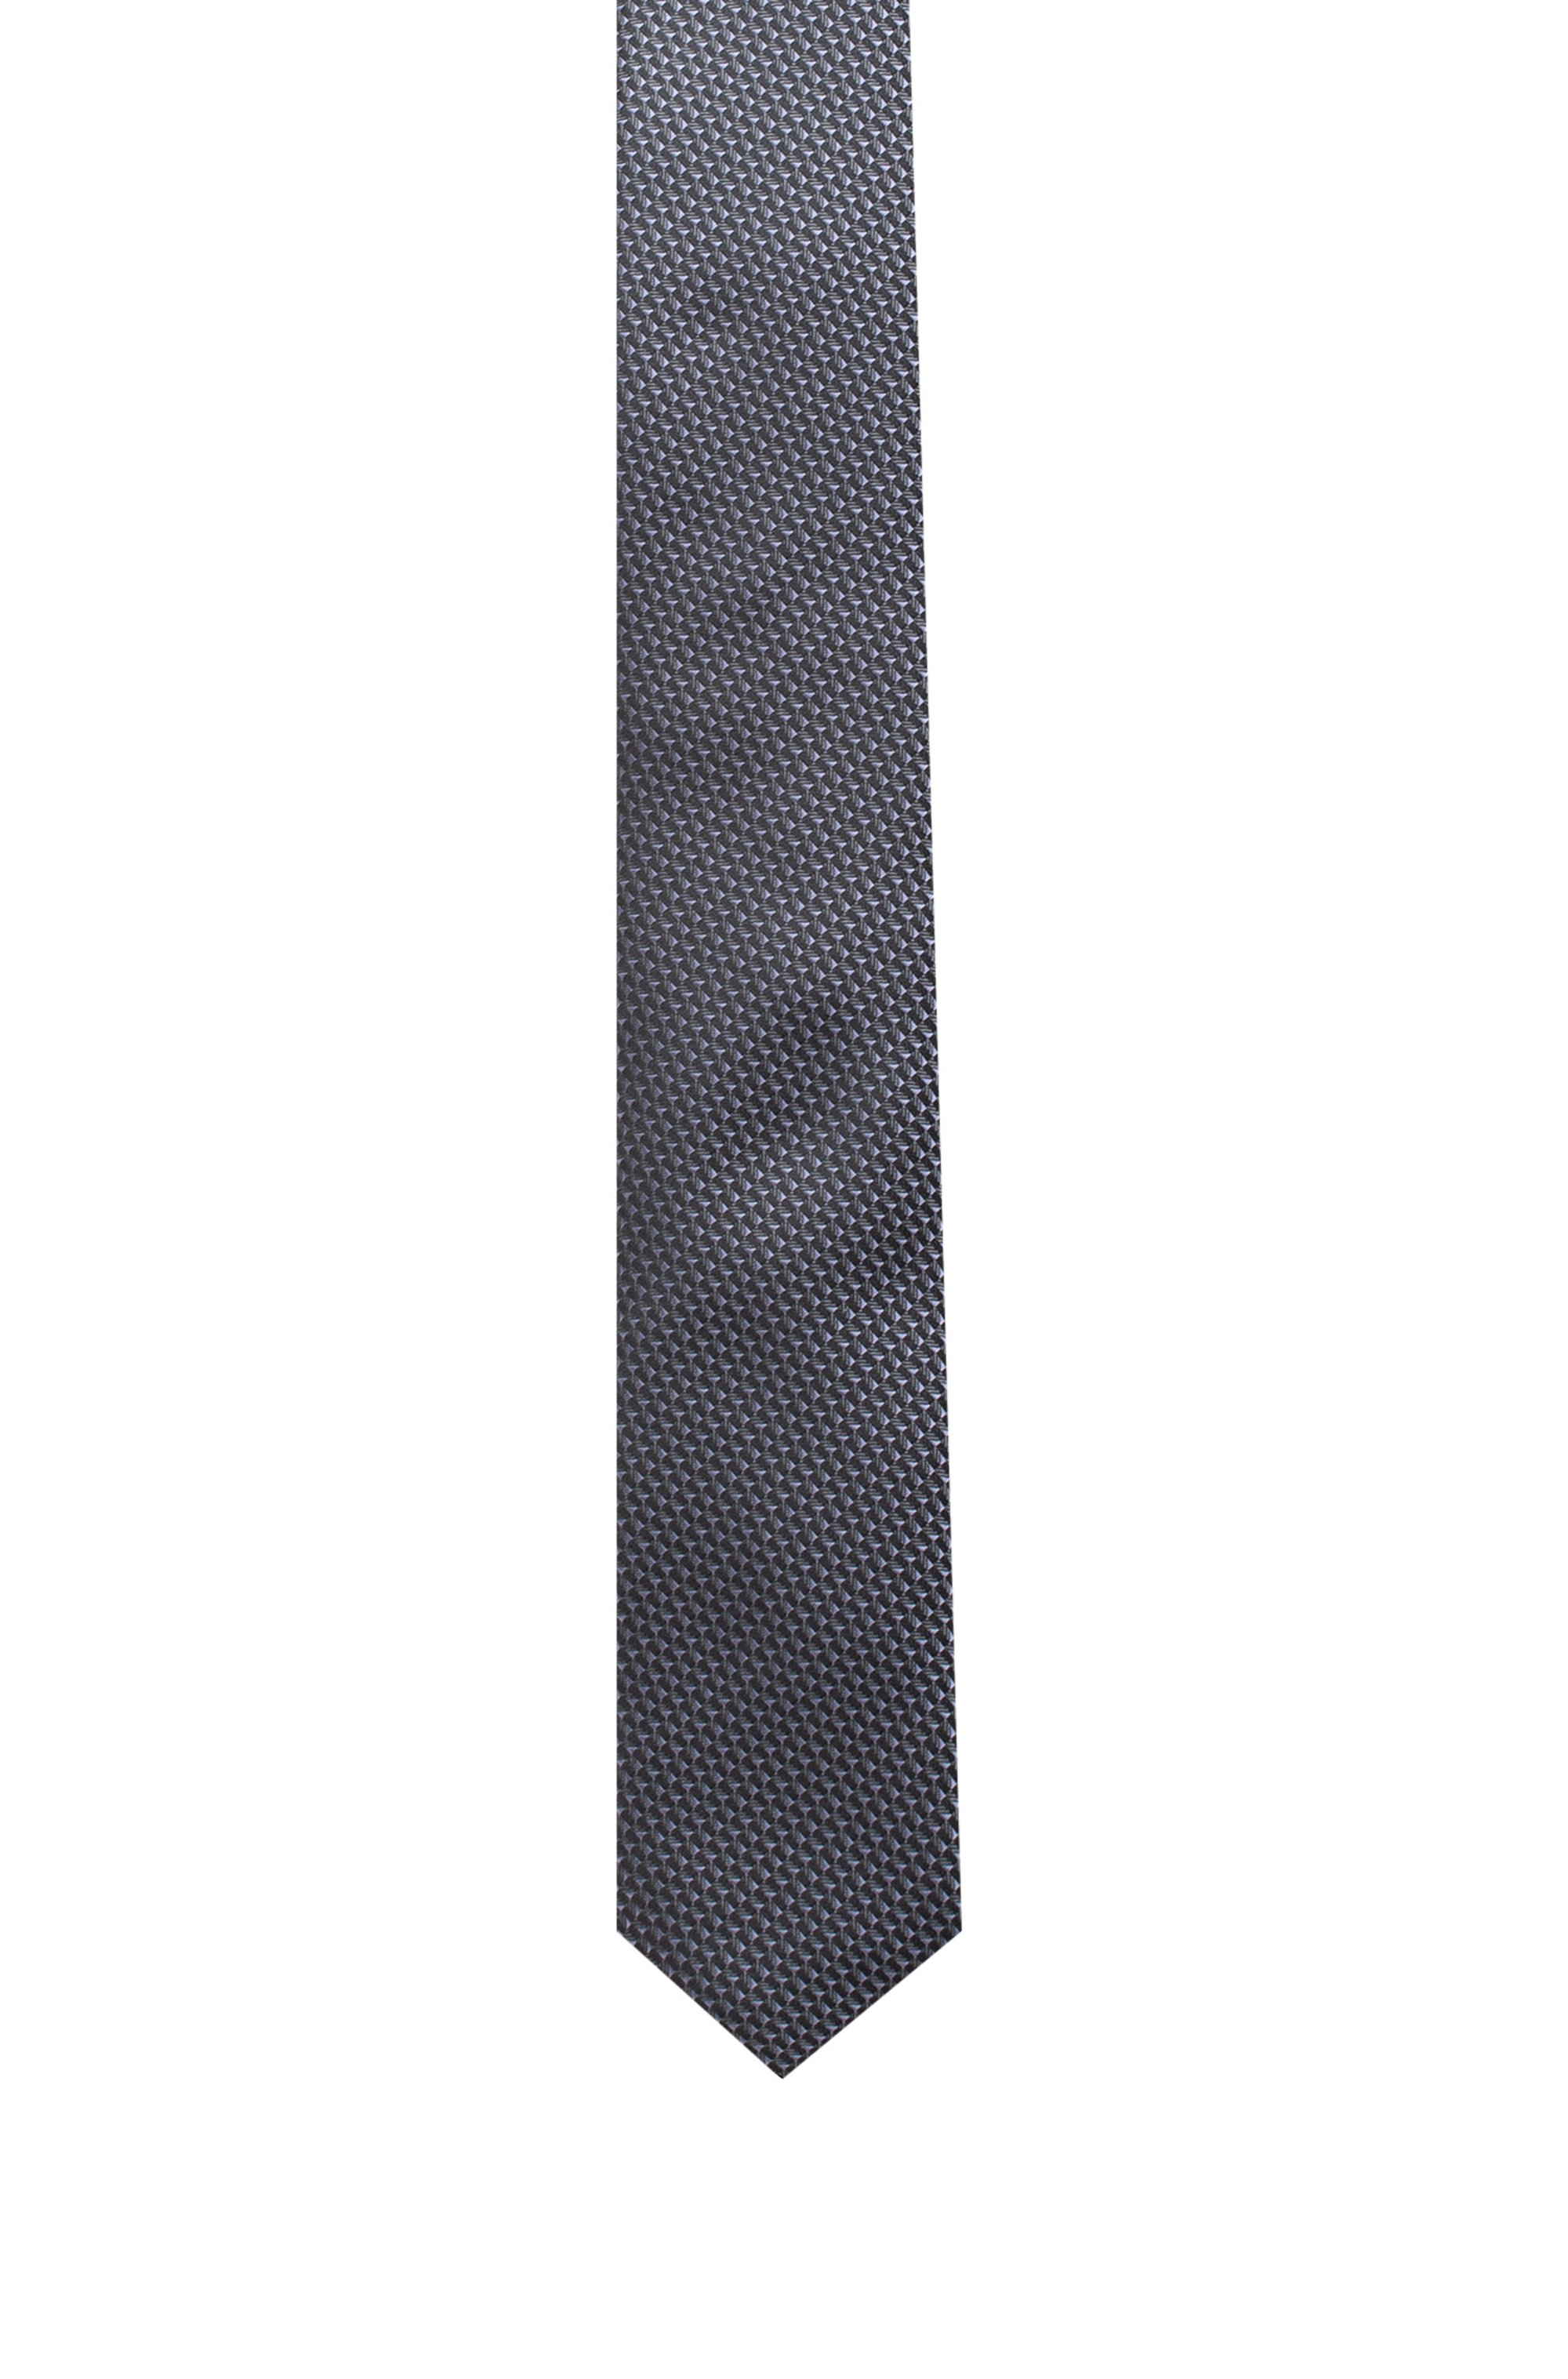 Silk tie with jacquard-woven micro pattern, Grey Patterned